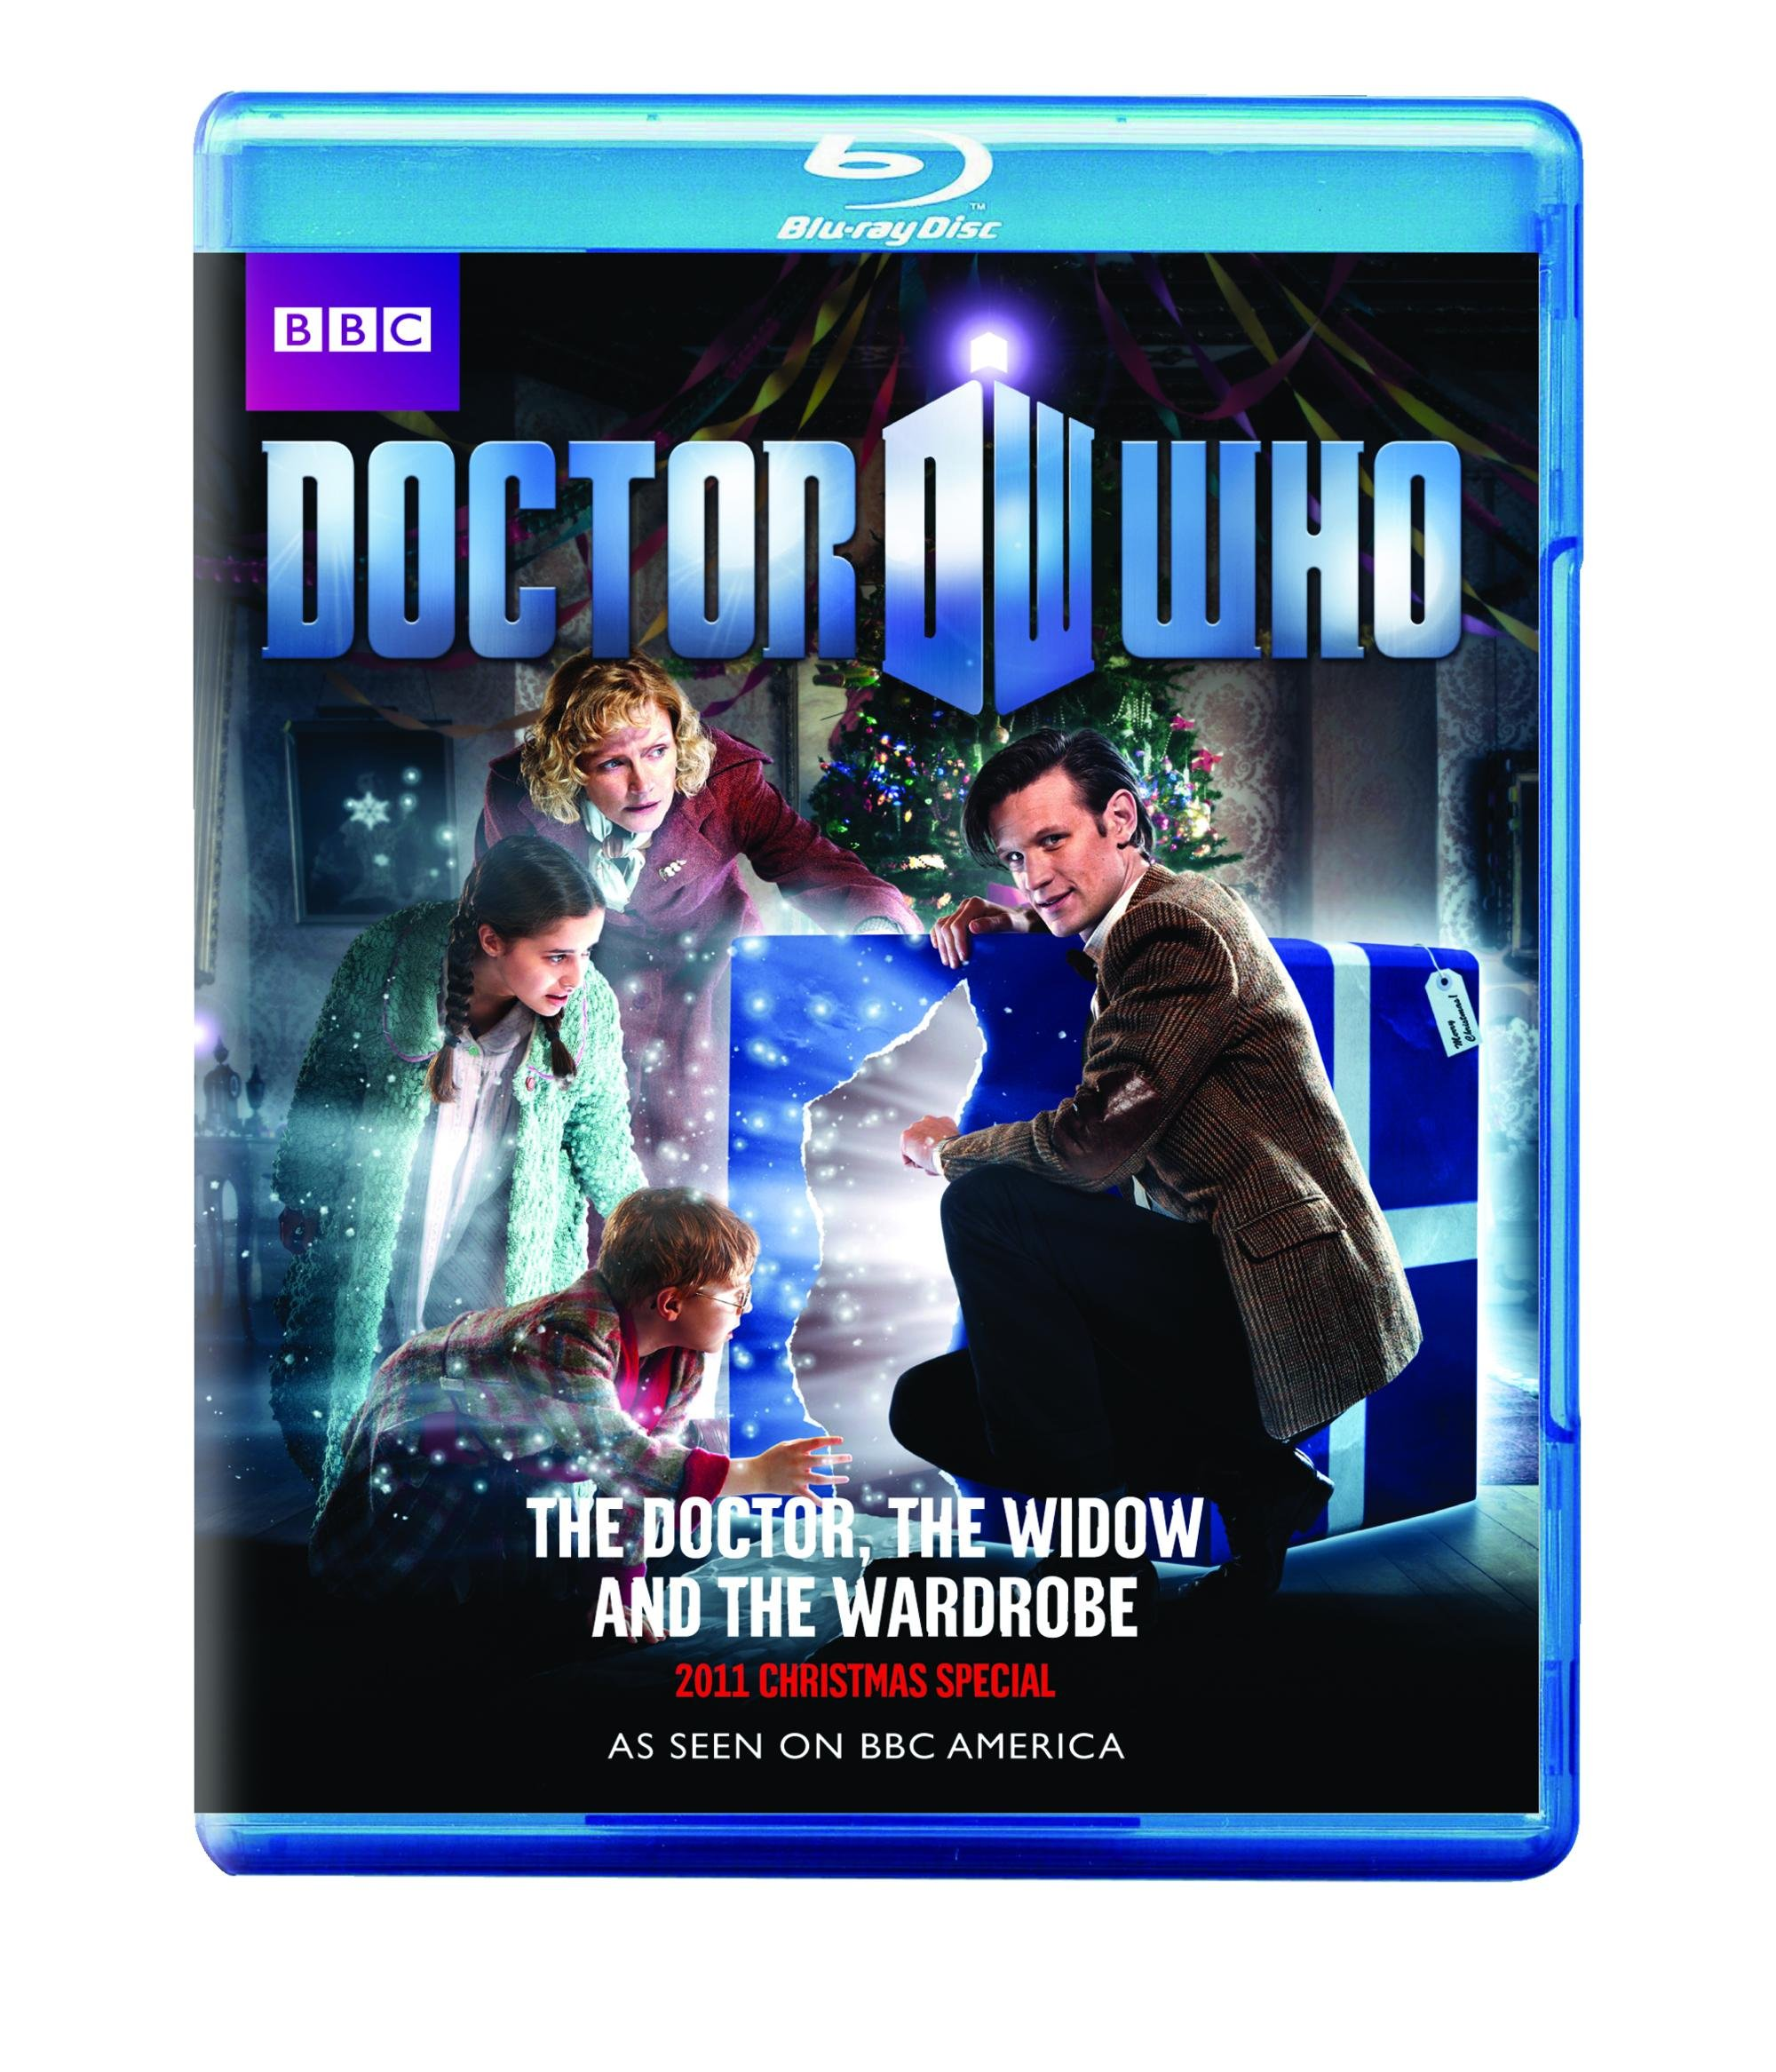 Blu-ray : Doctor Who: The Doctor, The Widow and the Wardrobe (2011 Christmas Special) (Blu-ray)